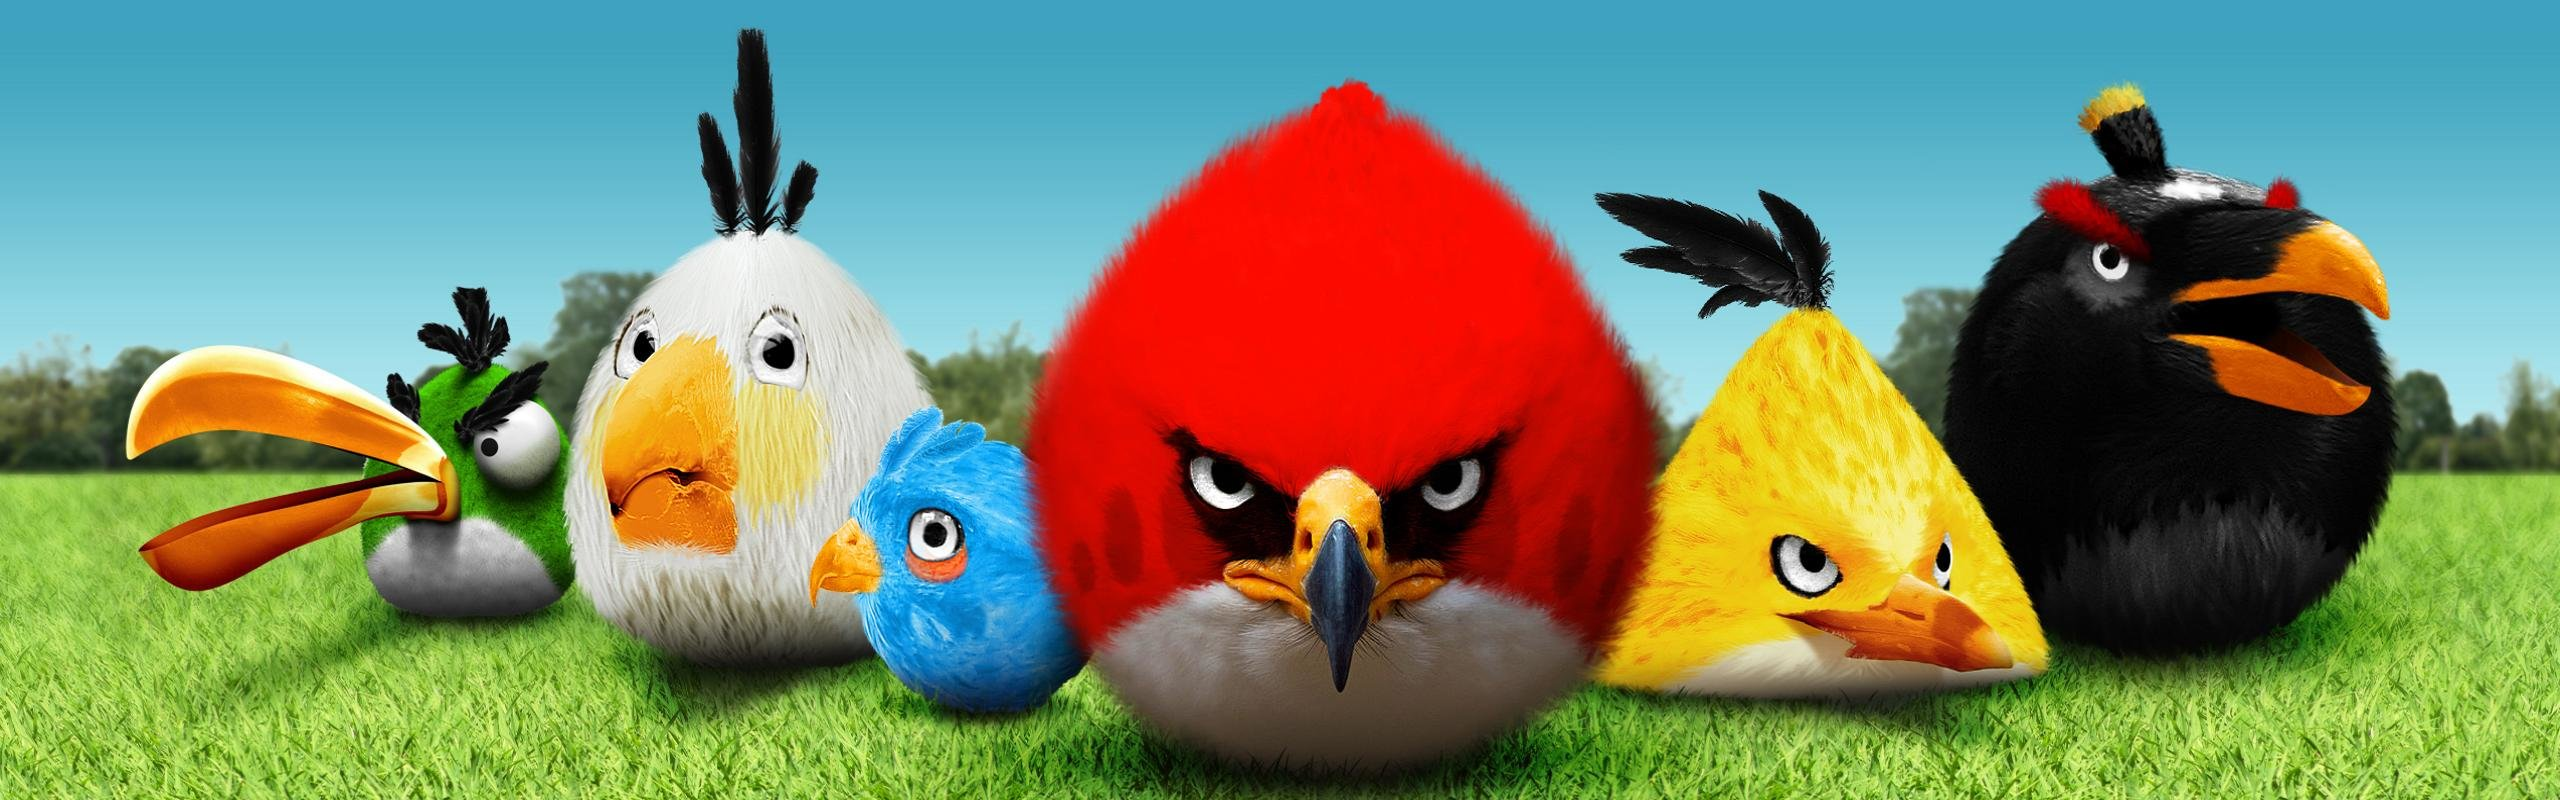 Download dual screen 2560x800 Angry Birds computer wallpaper ID:256703 for free